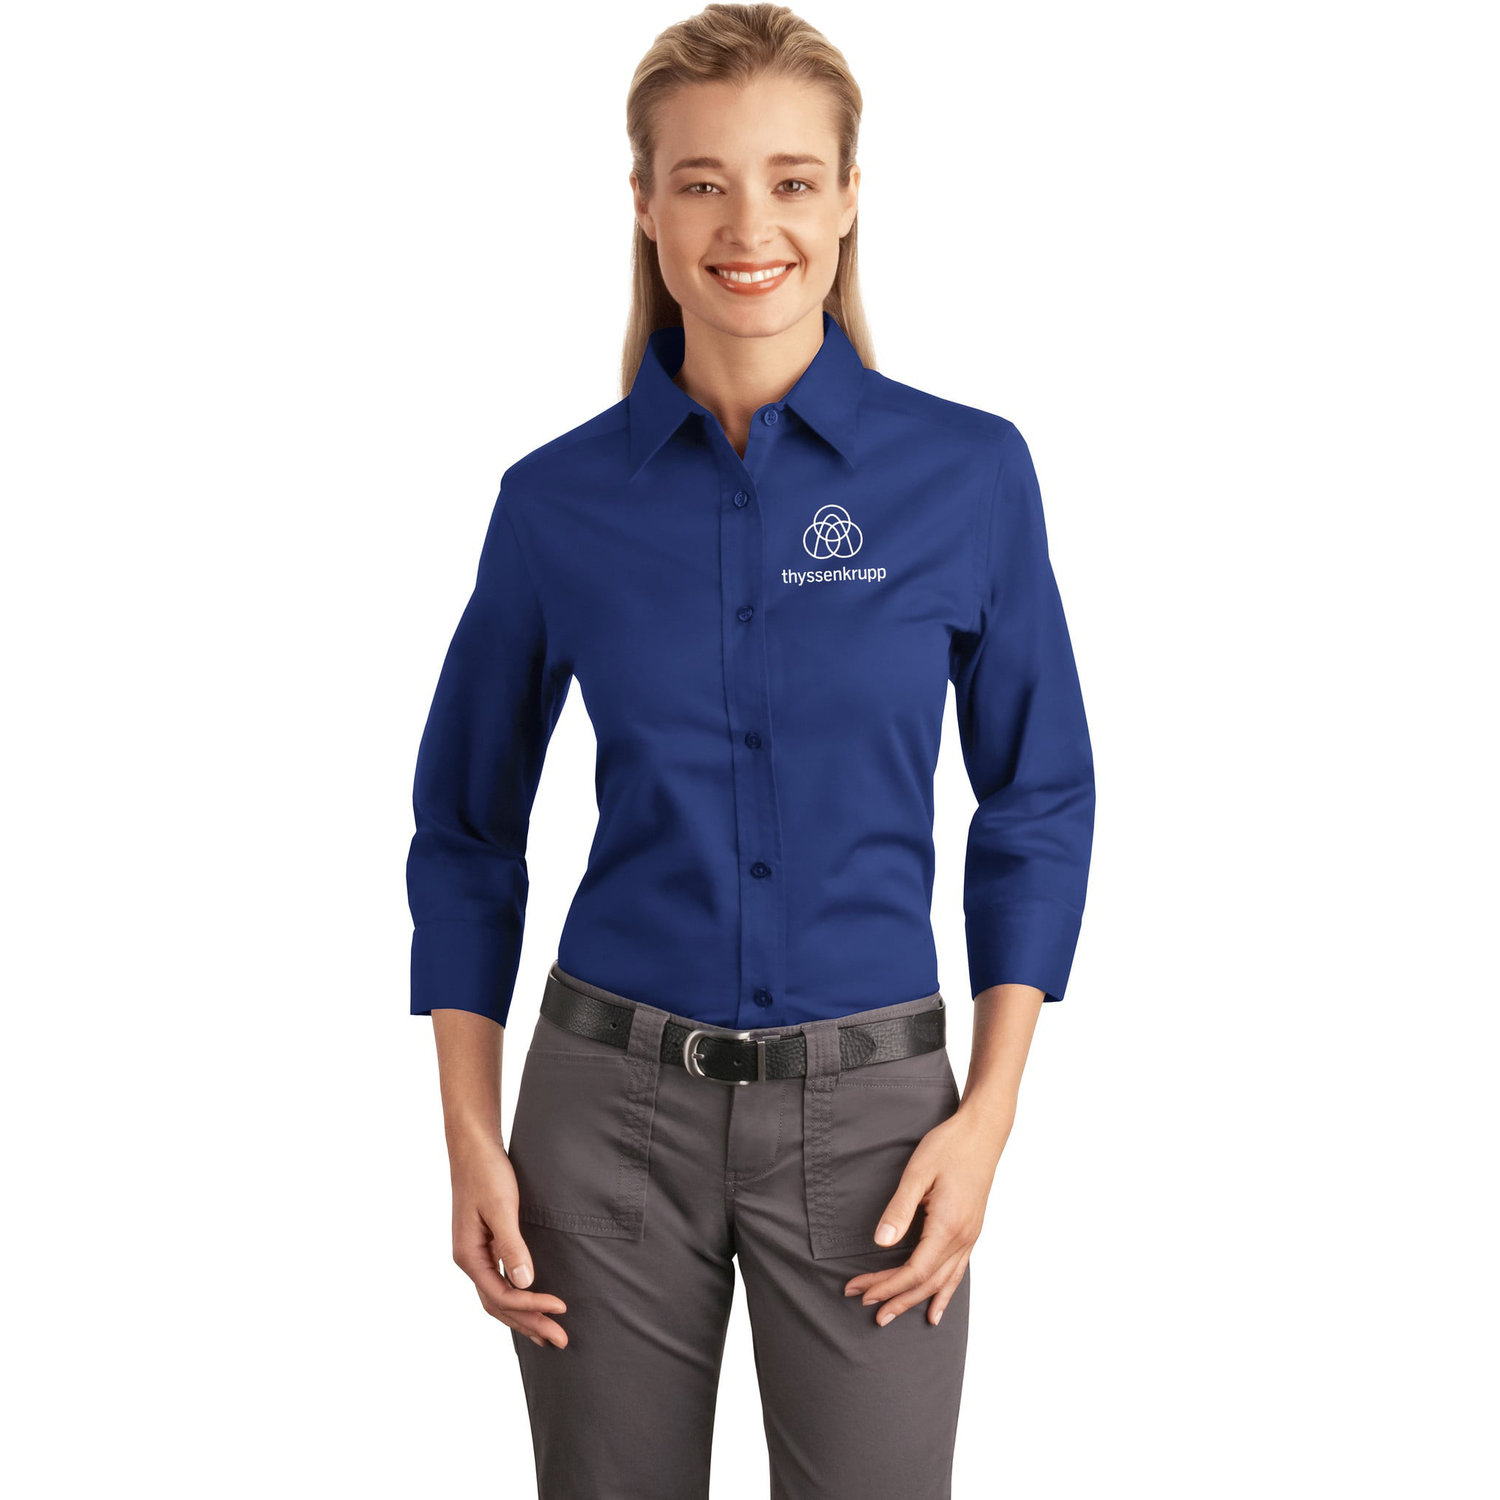 a5b9db407 Port Authority® Ladies 3/4-Sleeve Easy Care Shirt | L612 ...